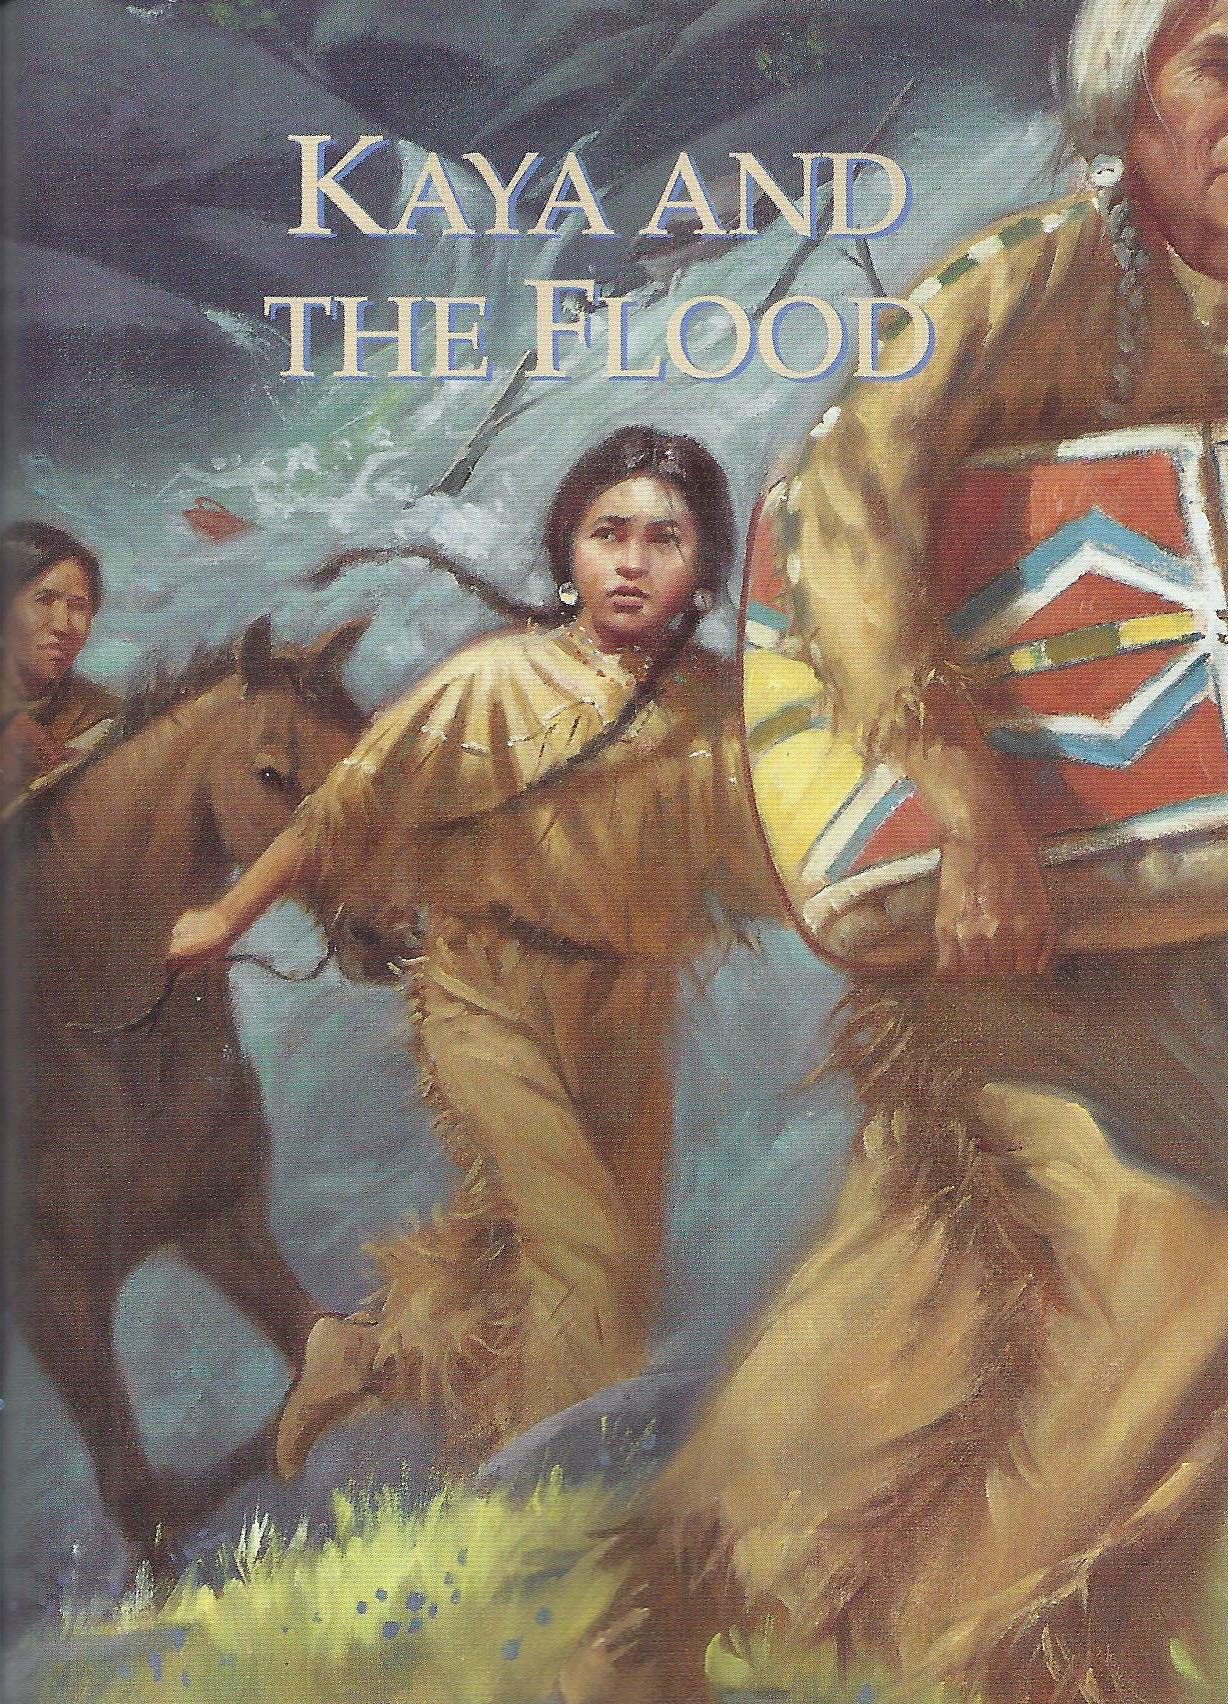 Kaya and the Flood